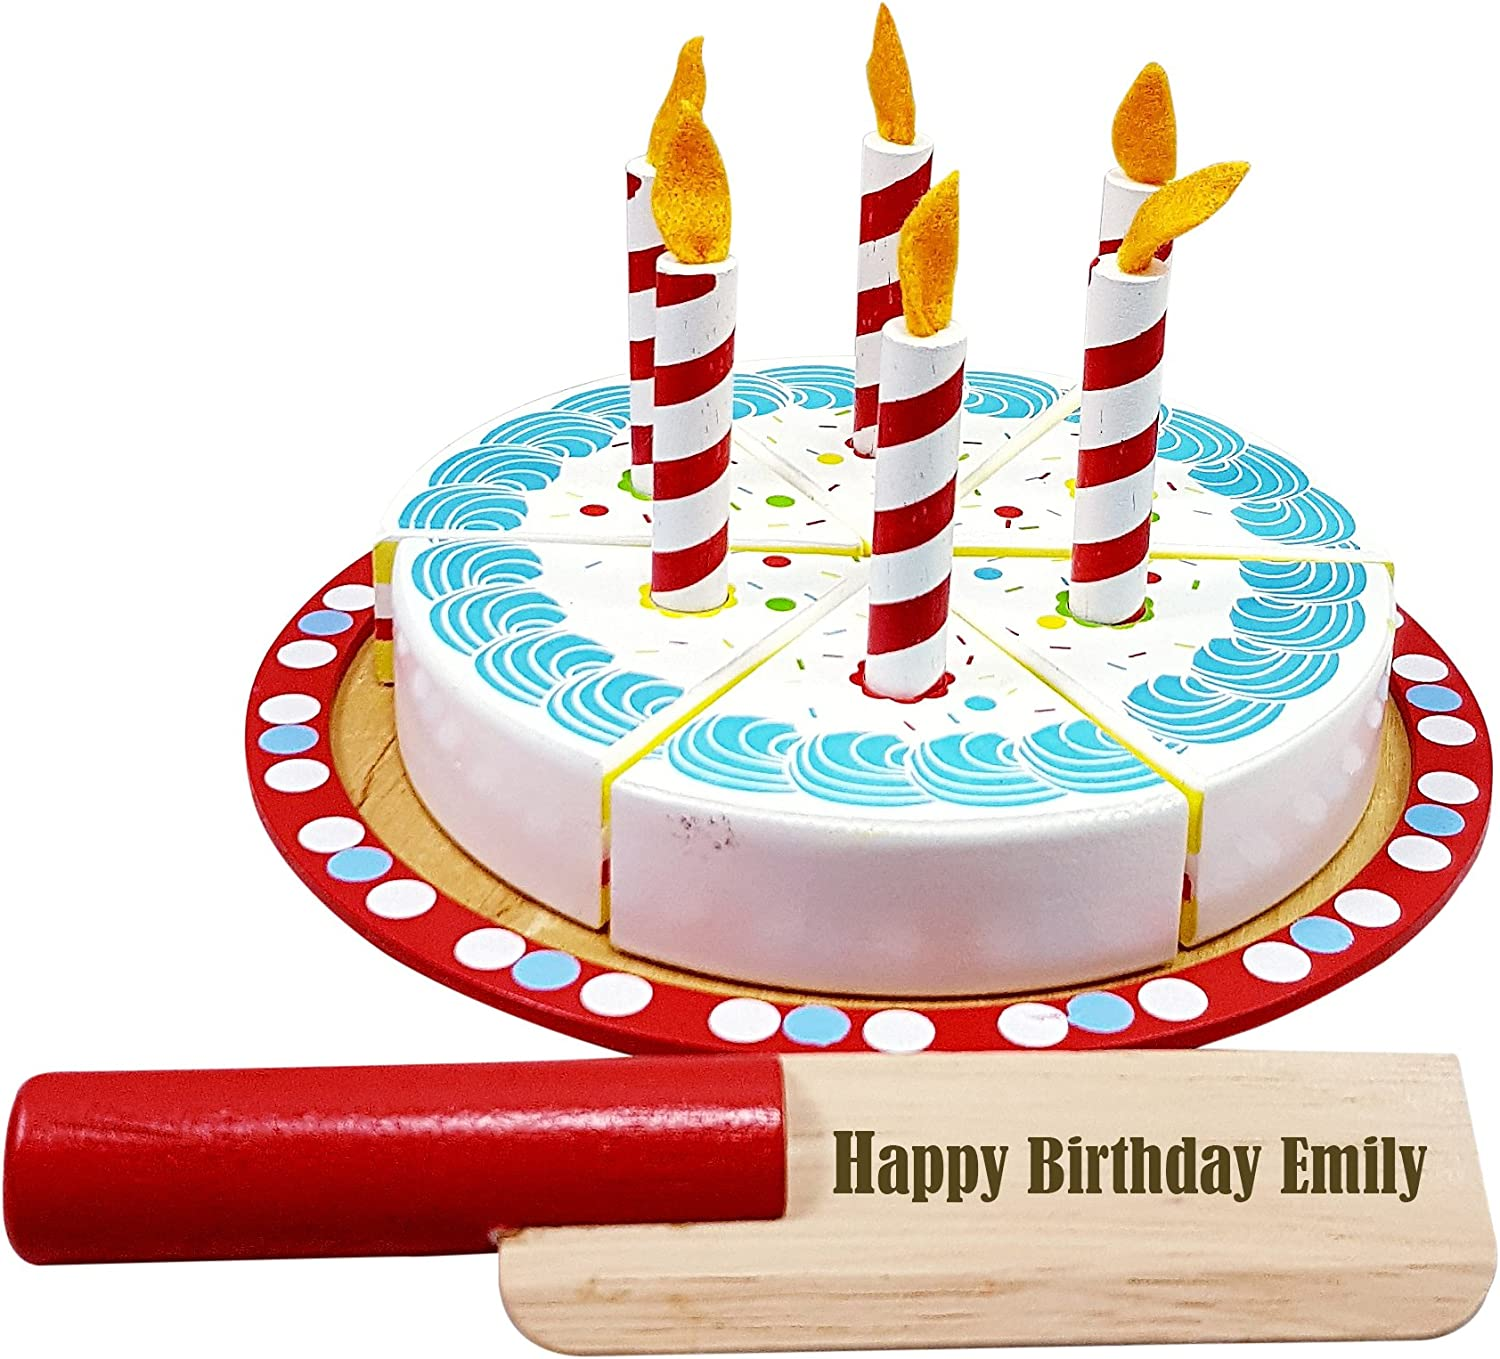 Pleasing Personalised Toy Wooden Birthday Cake Food Set Baby Toddler Gift Funny Birthday Cards Online Barepcheapnameinfo